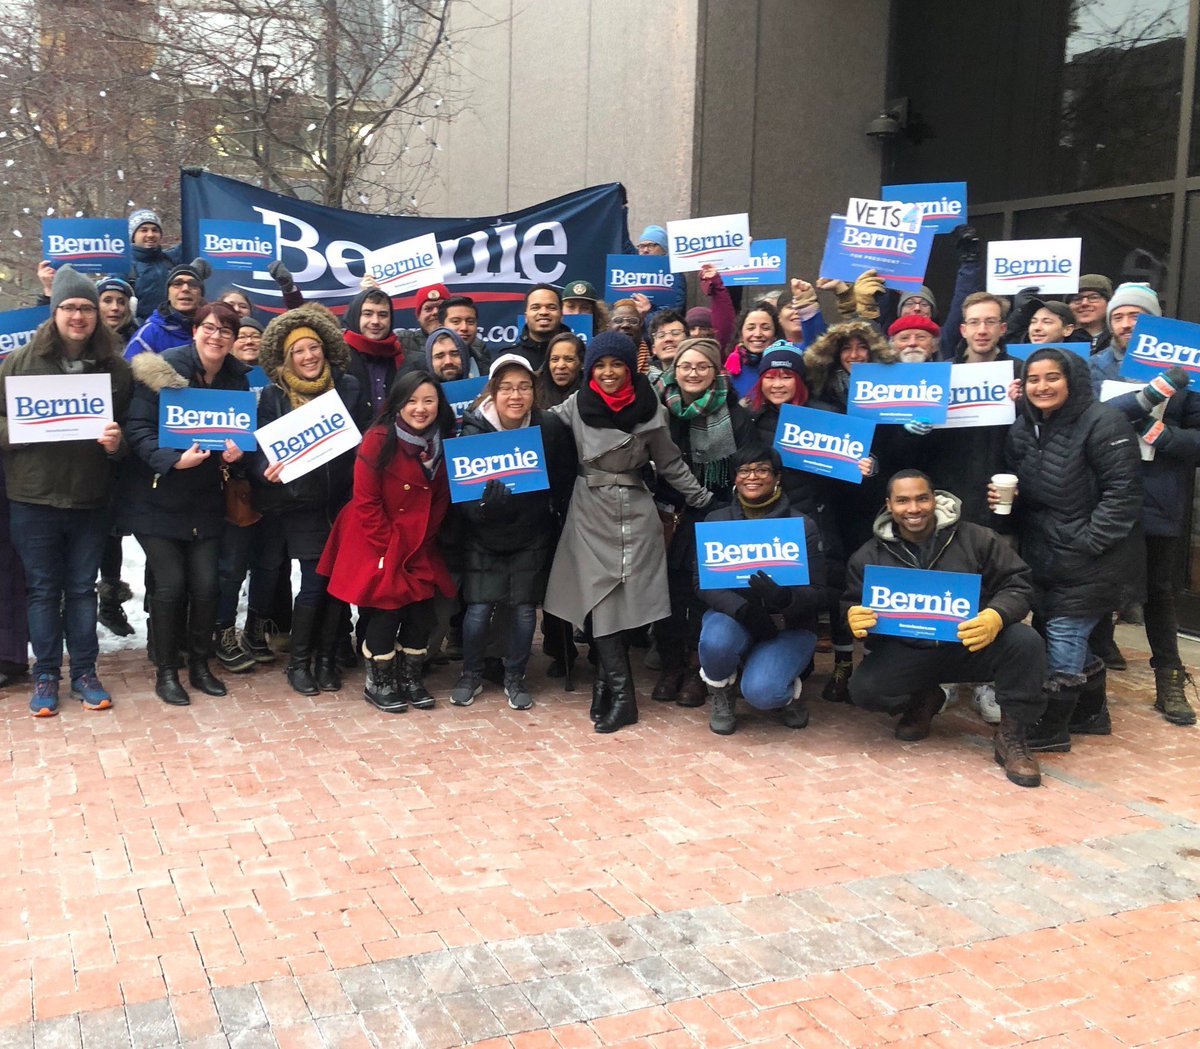 Early voting in Minnesota starts today! And we are ready for @BernieSanders! #NotMeUs